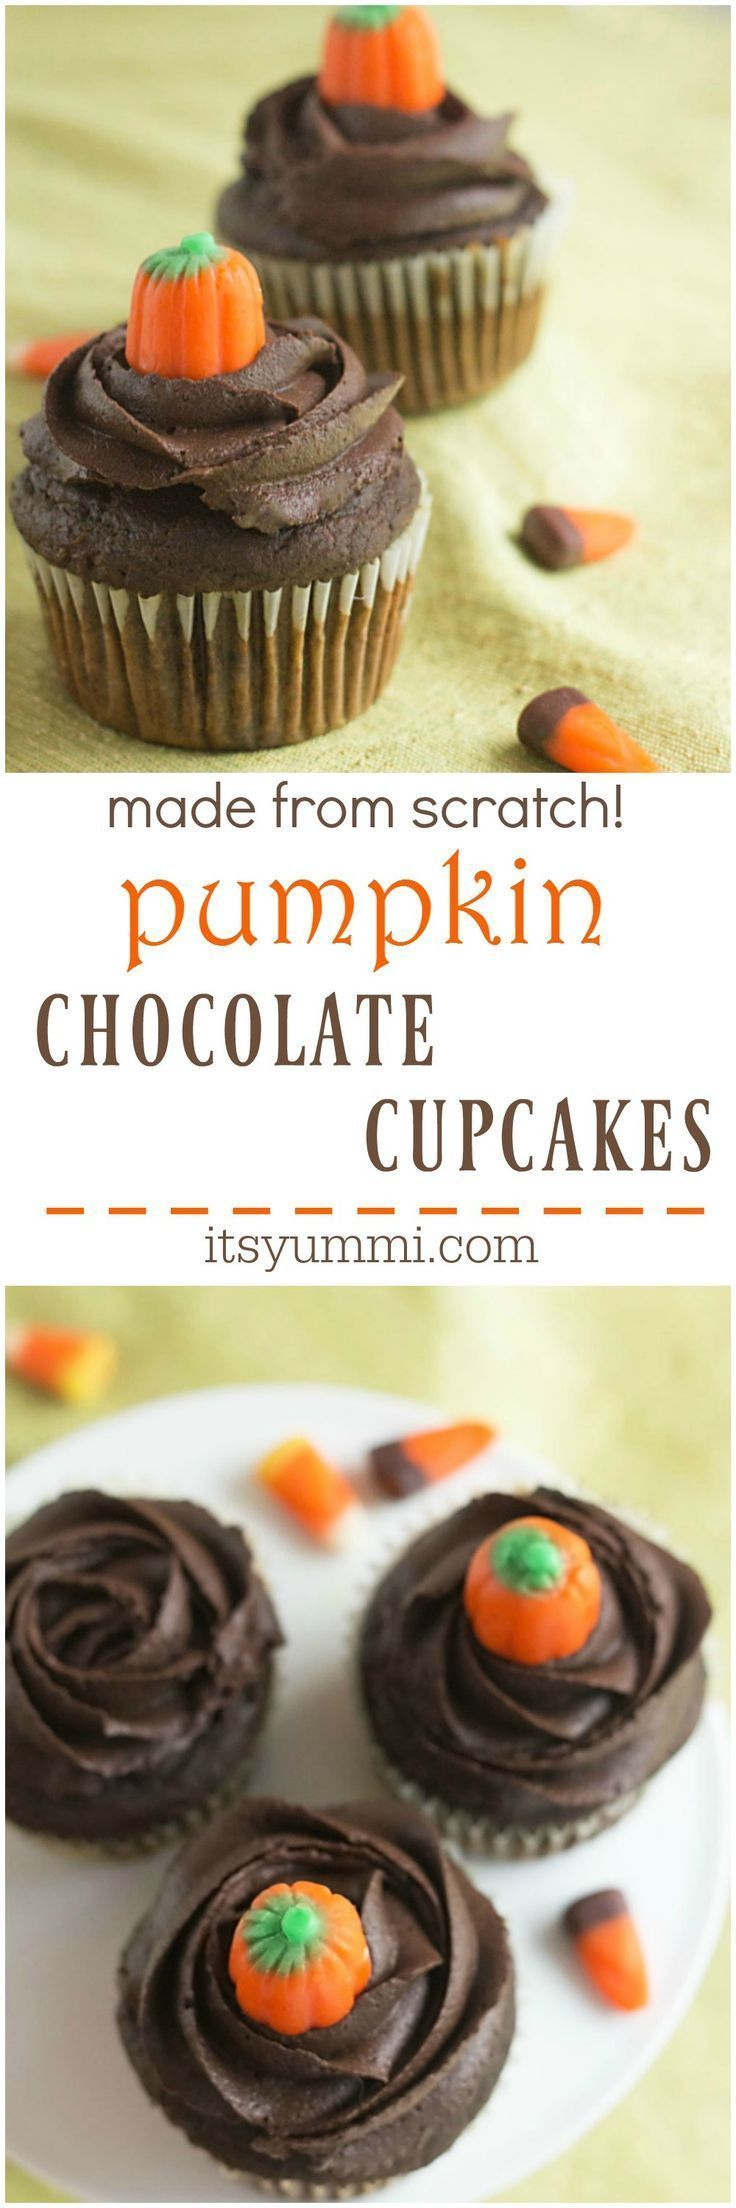 826 best halloween recipes images on pinterest halloween for How to make halloween cupcakes from scratch